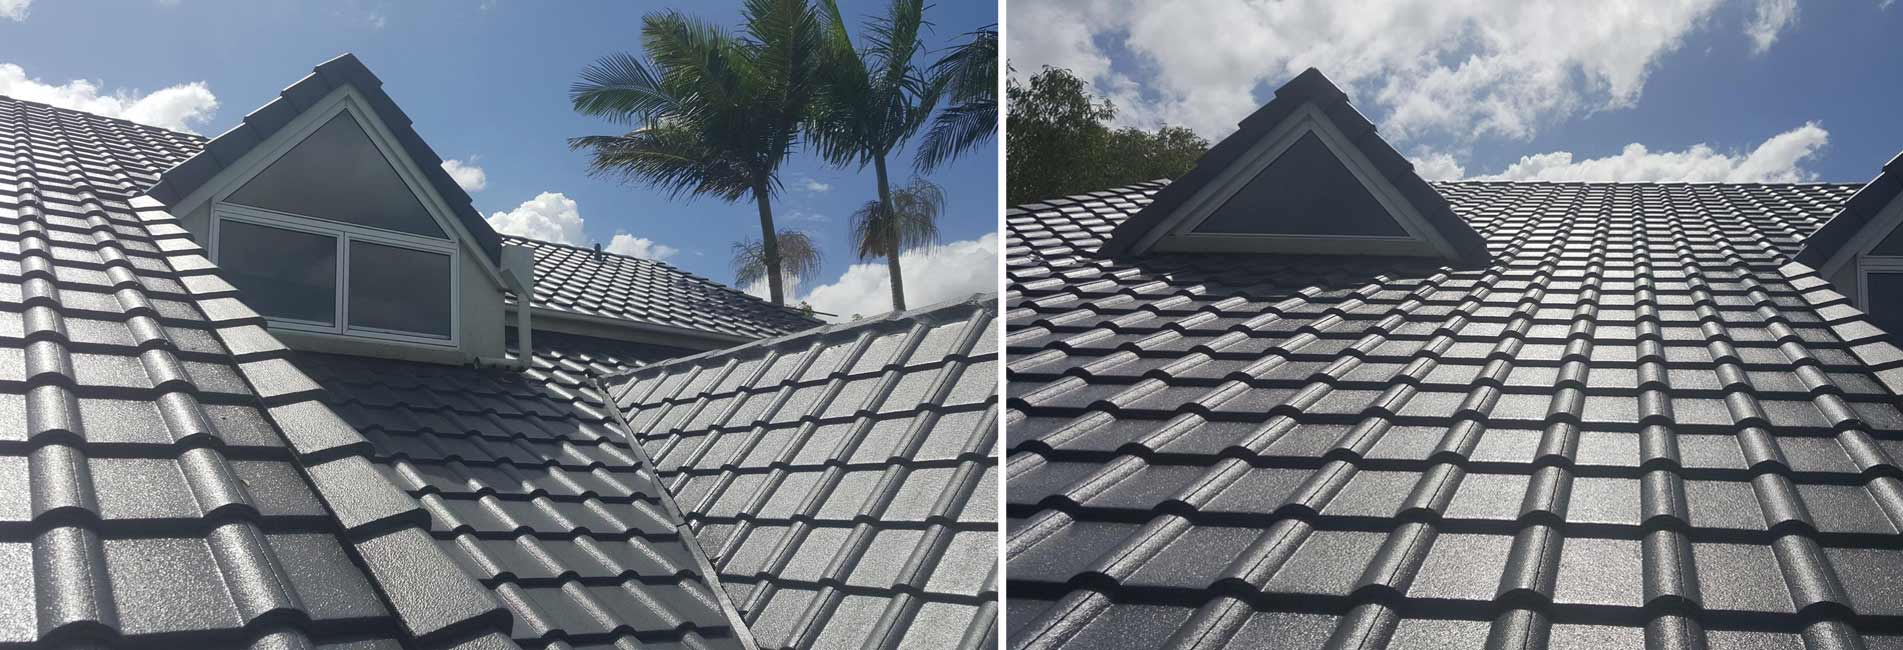 Metal Roofing Burpengary, Roof Replacement Moreton Bay, Terracotta Roofs Strathpine